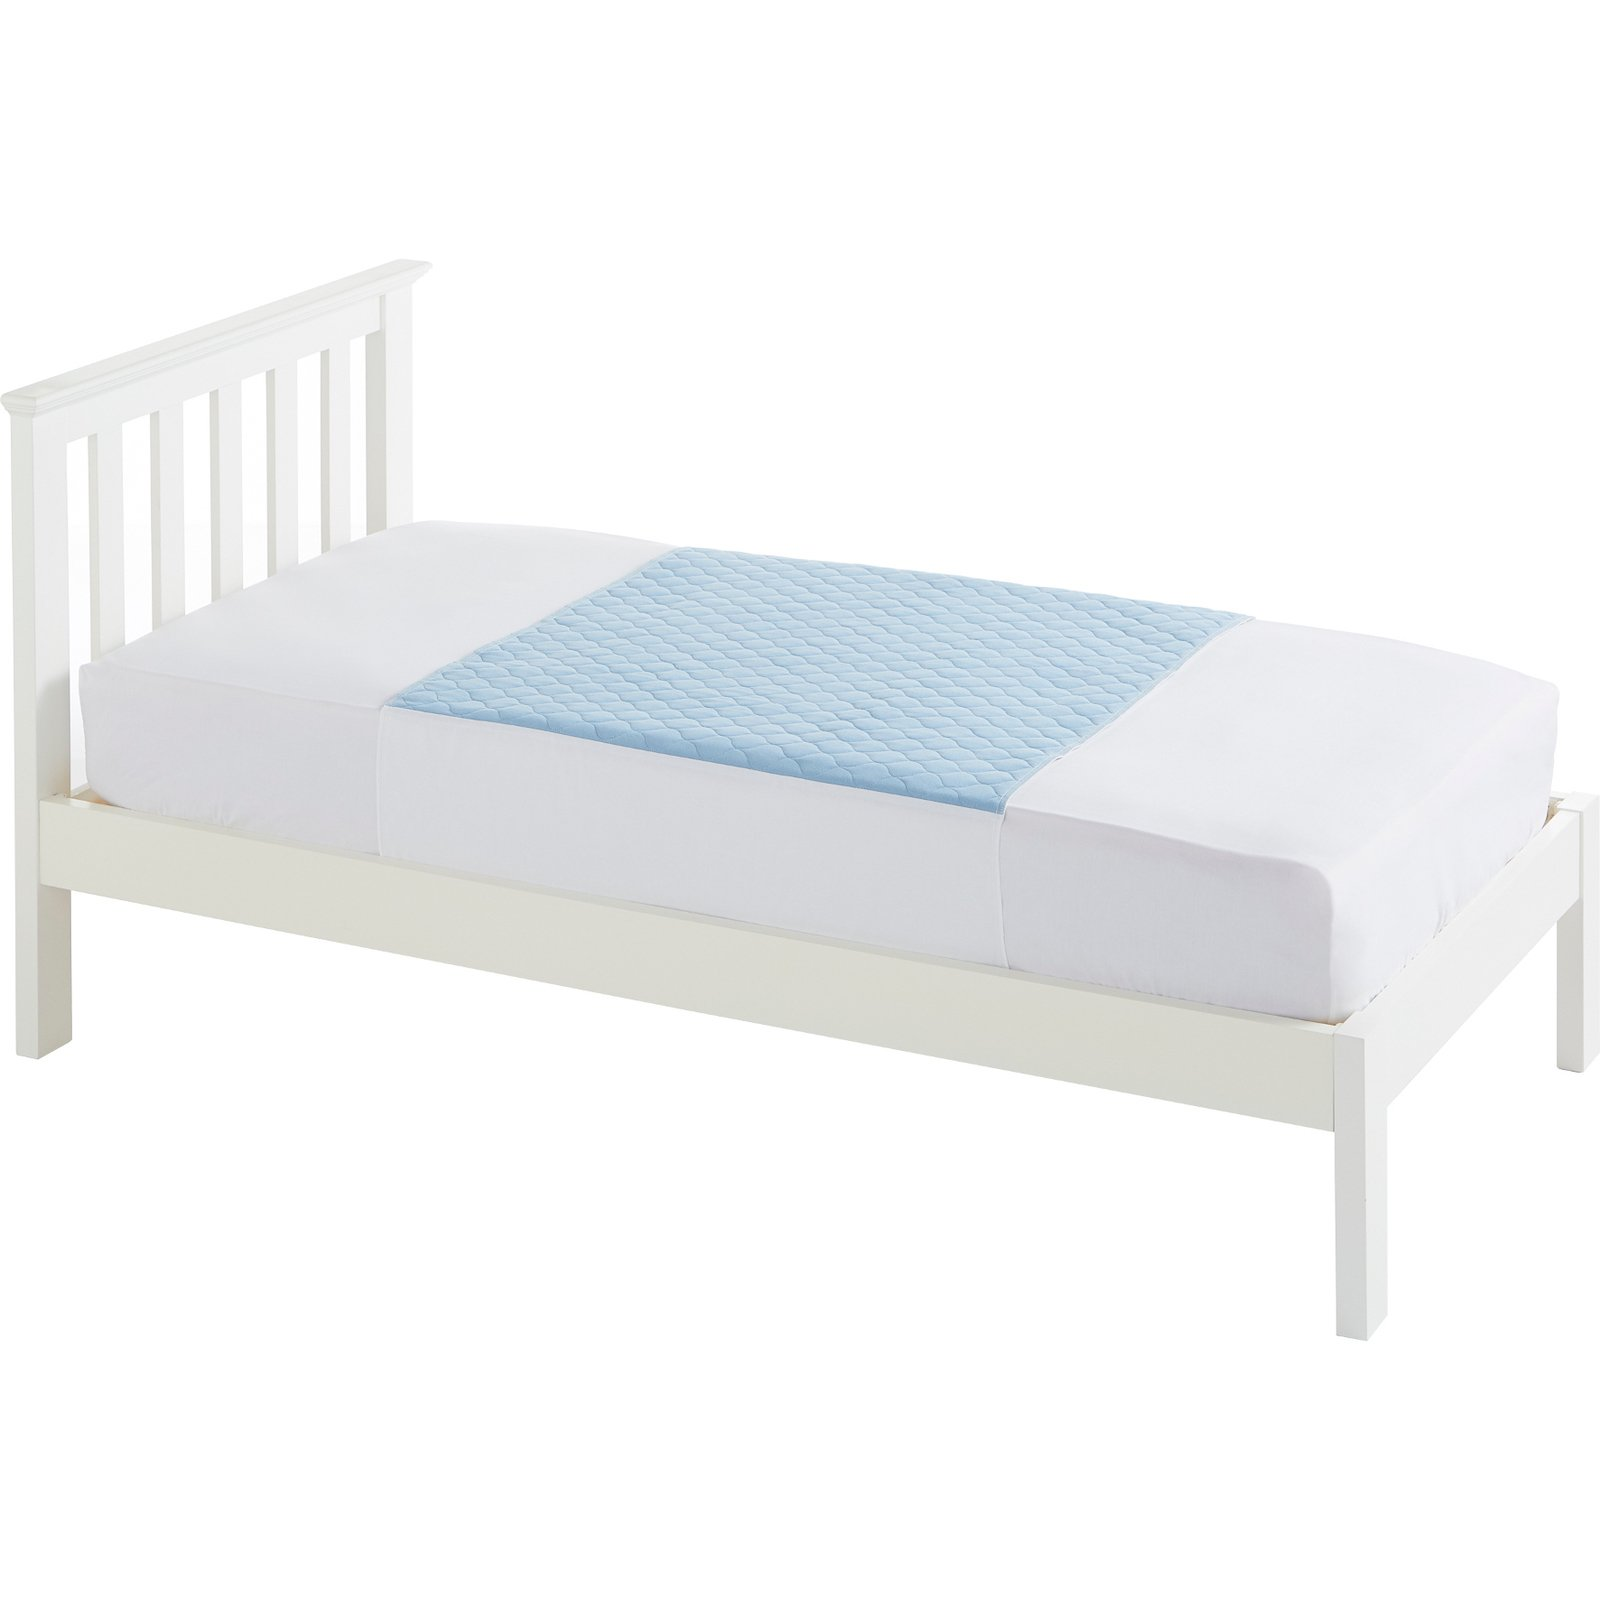 Single Bed 91x91cm Blue